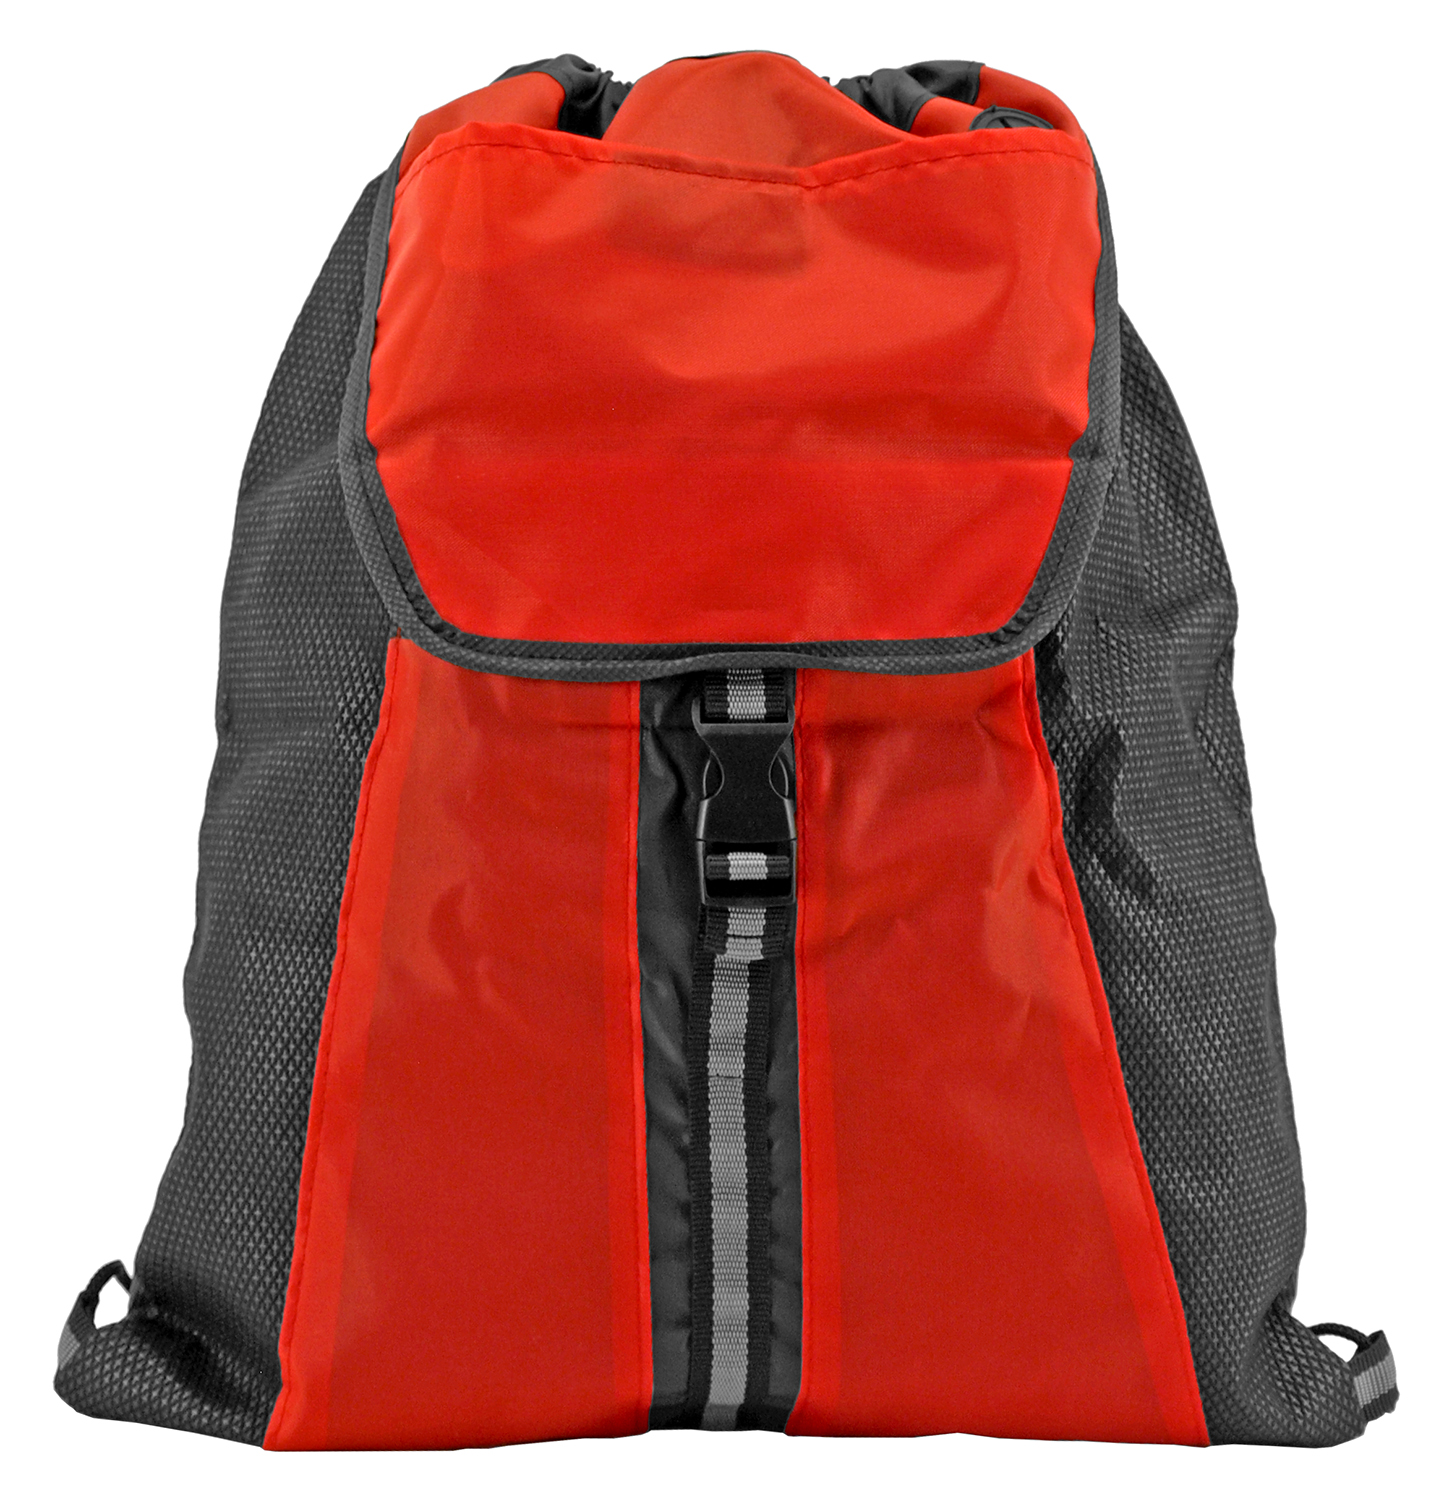 Sport Drawstring Knapsack Backpack